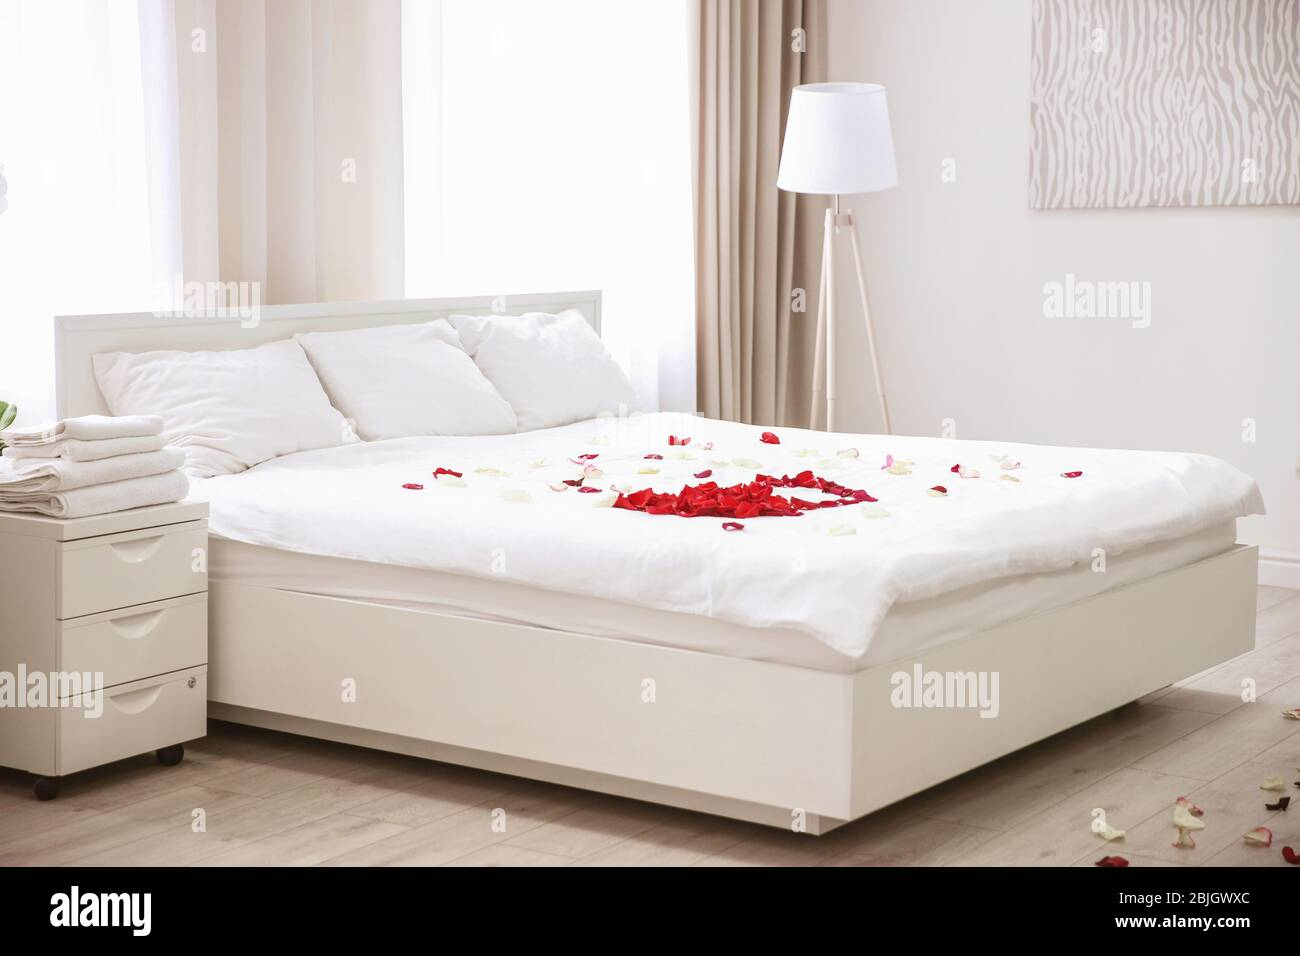 Rose Petals On Bed In Hotel Room Stock Photo Alamy